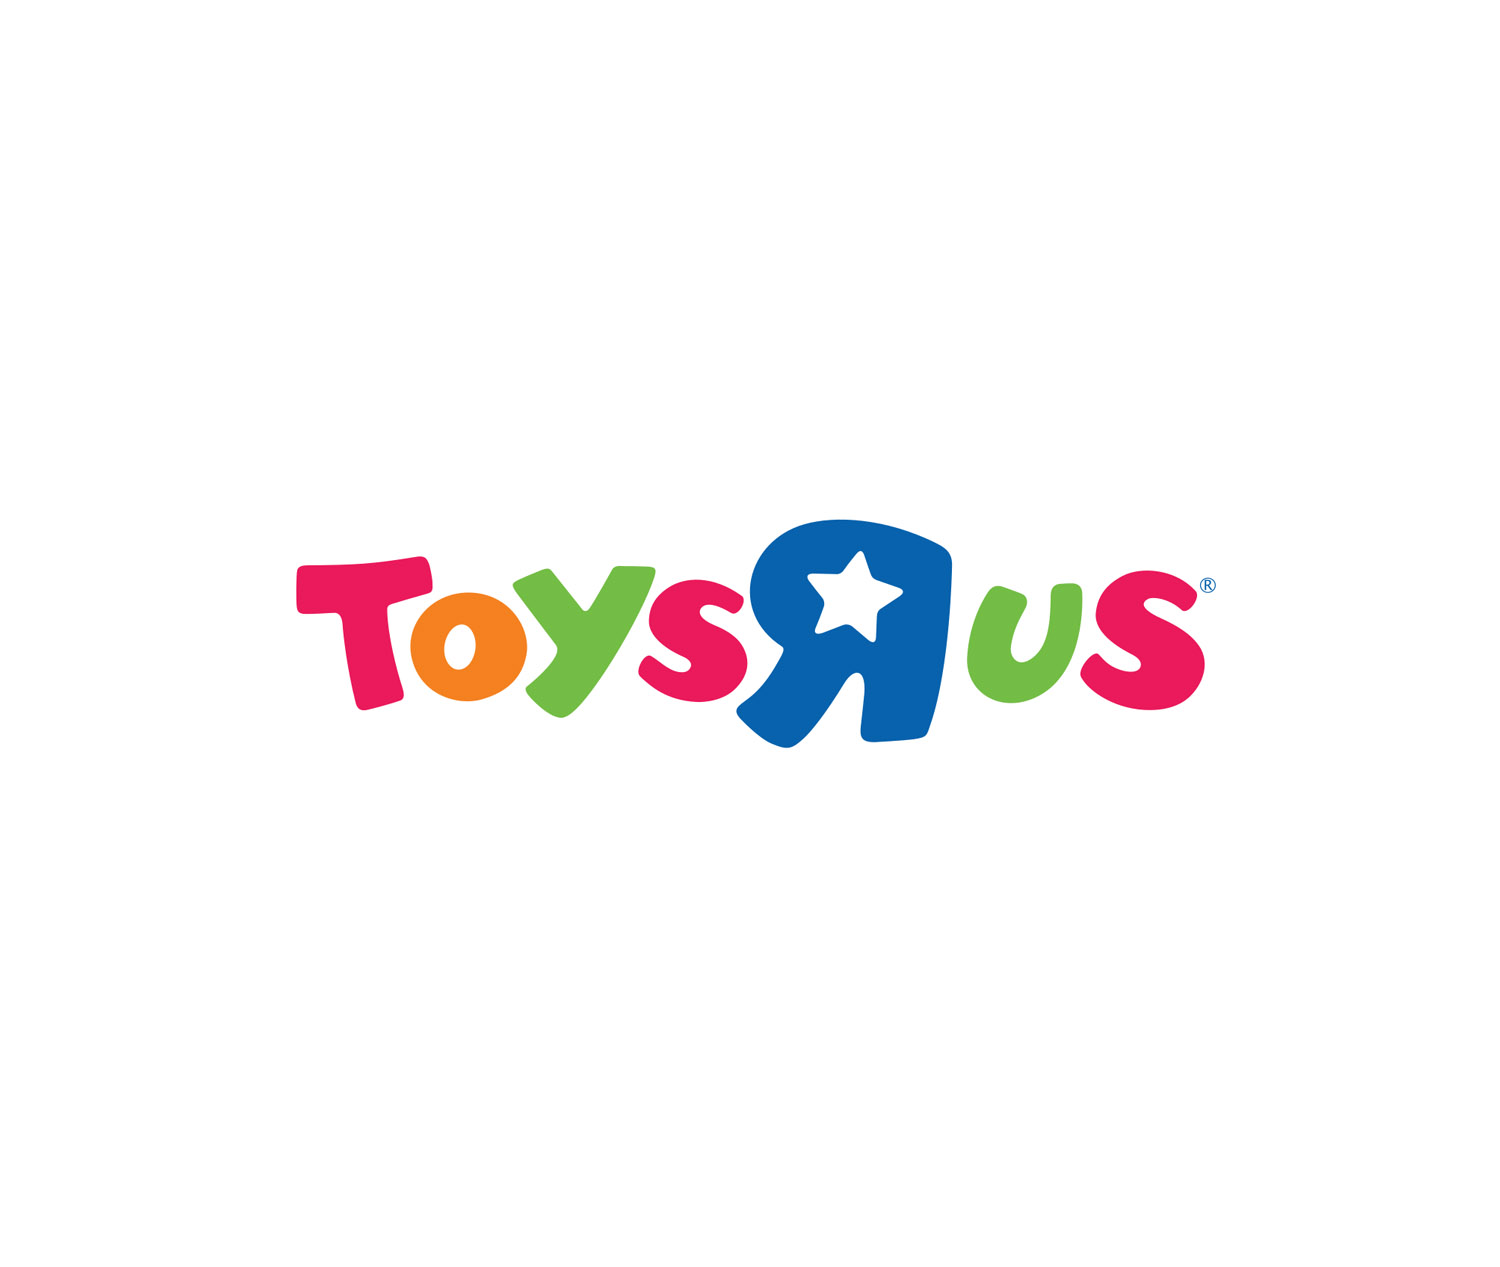 Think Toys R Us.